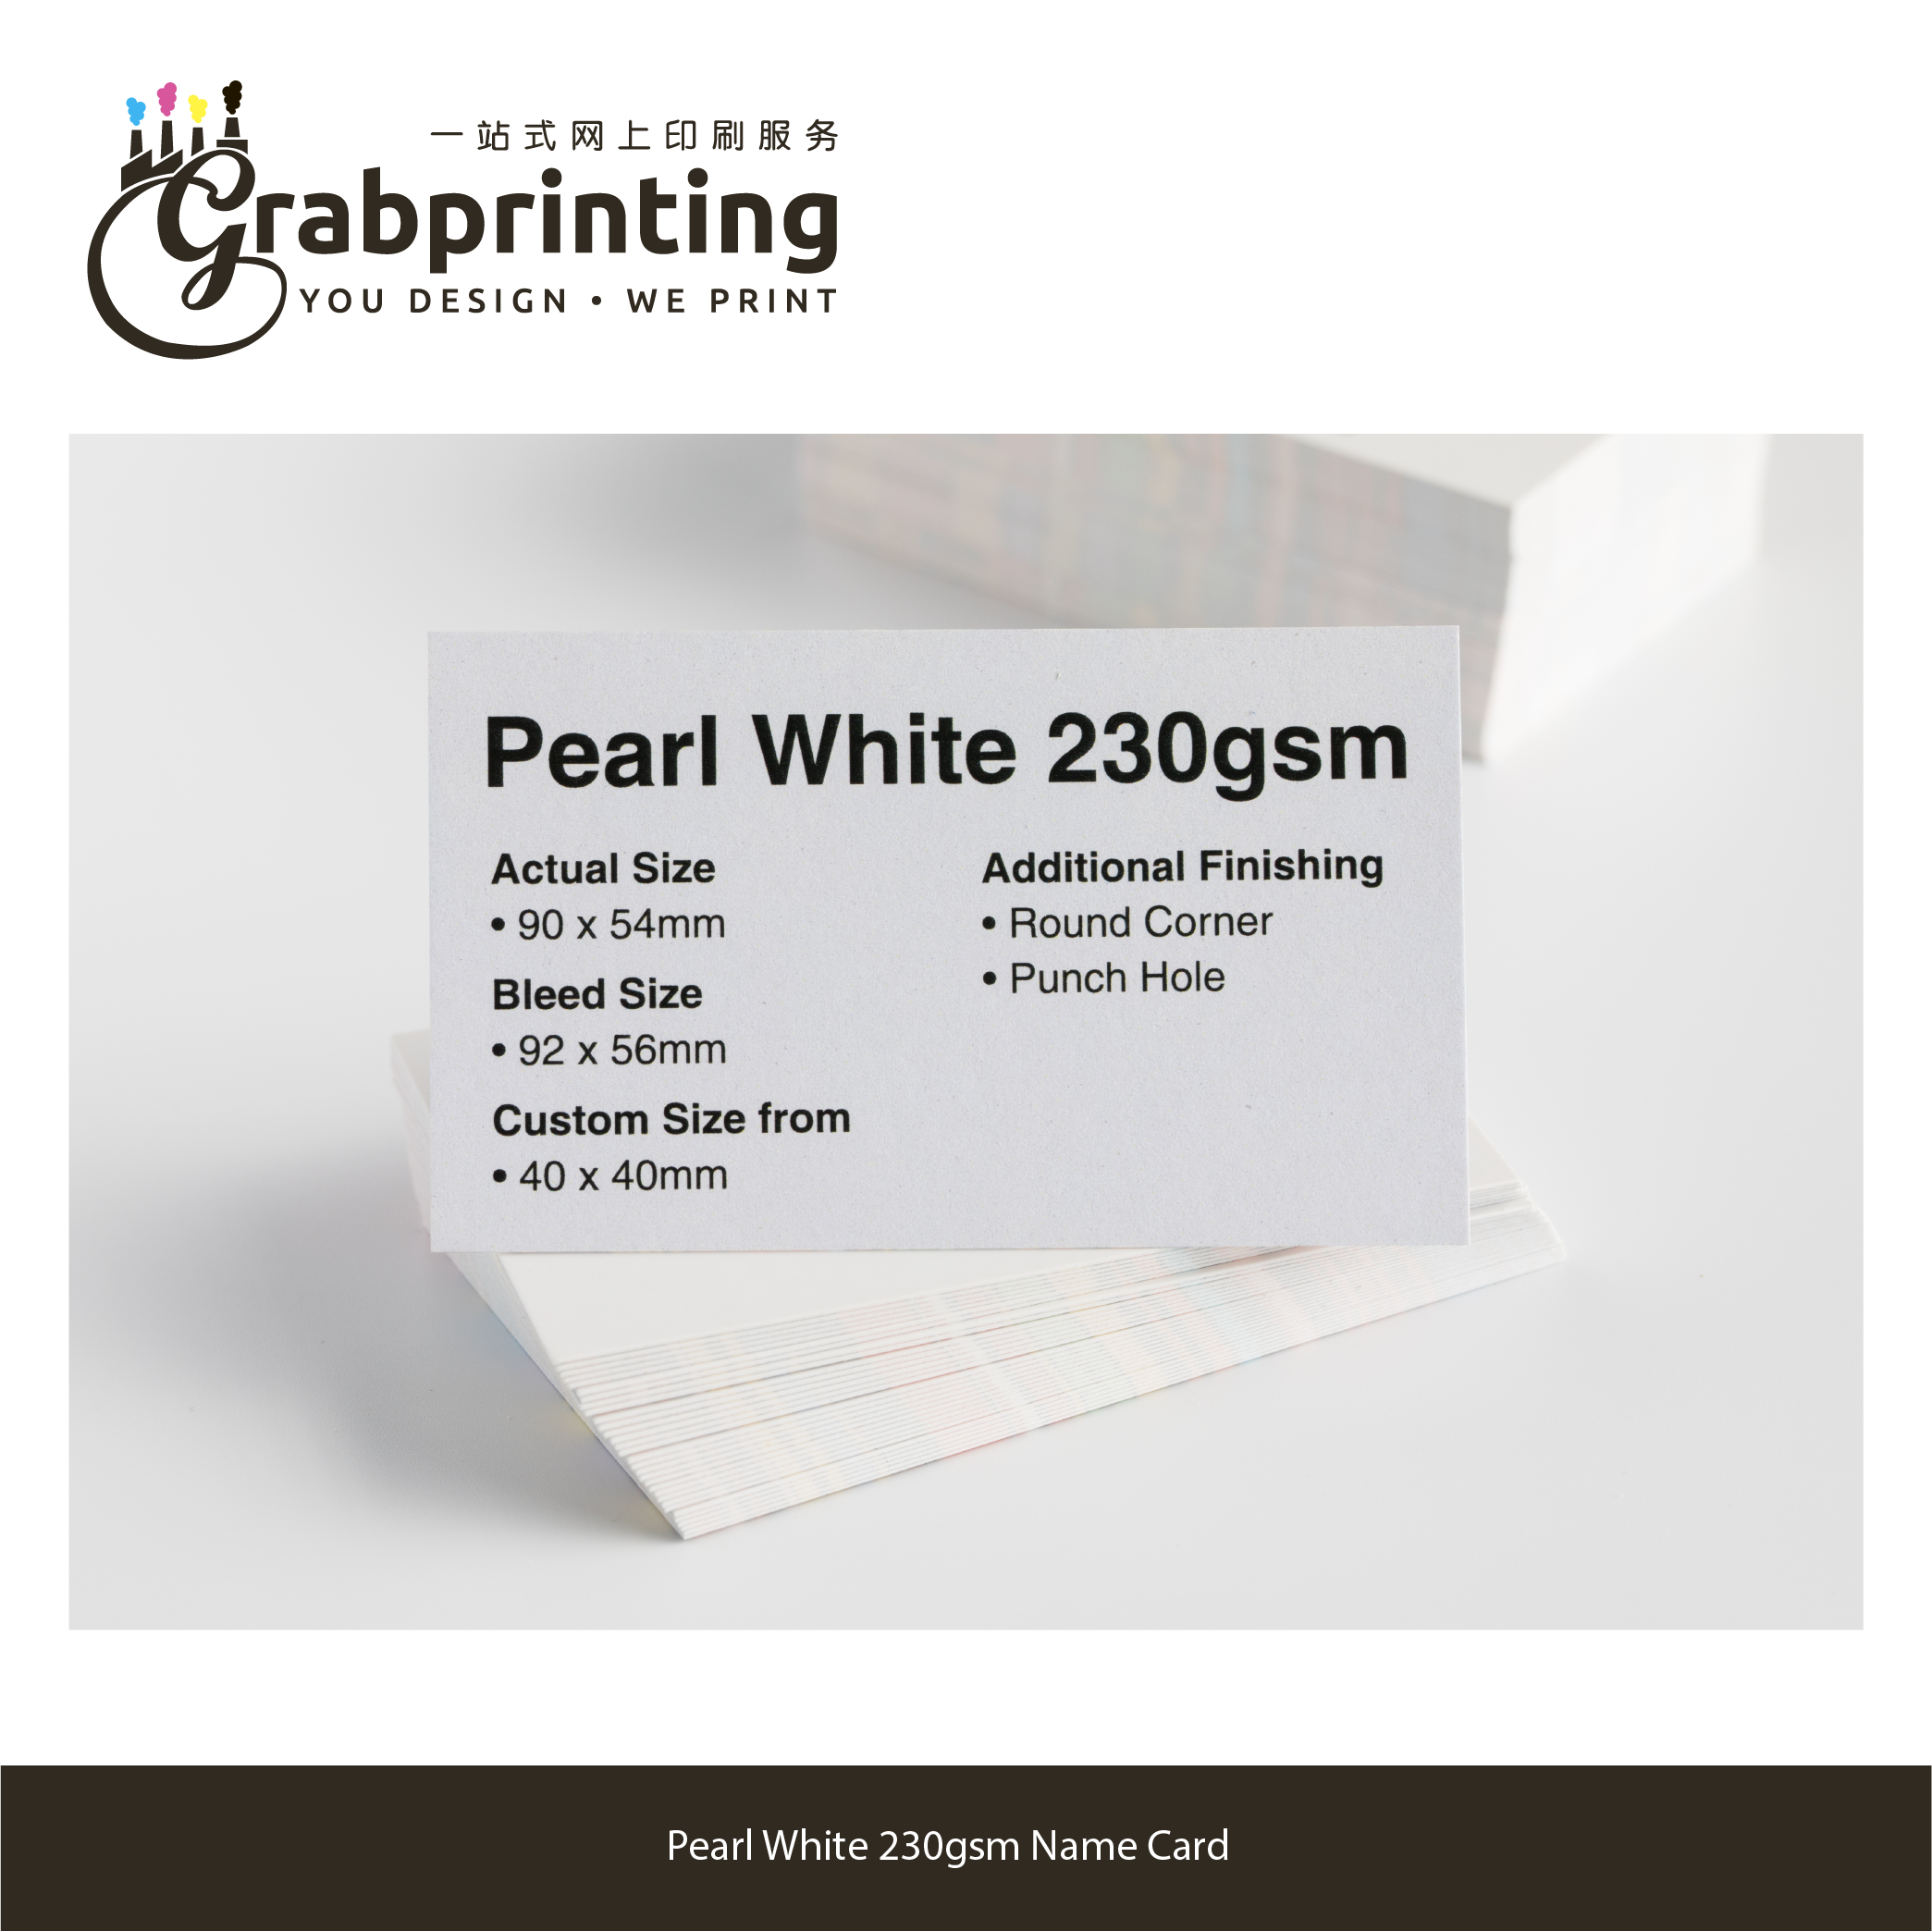 name cards Name Card (23 materials to choose from) grabprinting 38 Pearl White 230gsm Name Card 501px 501px